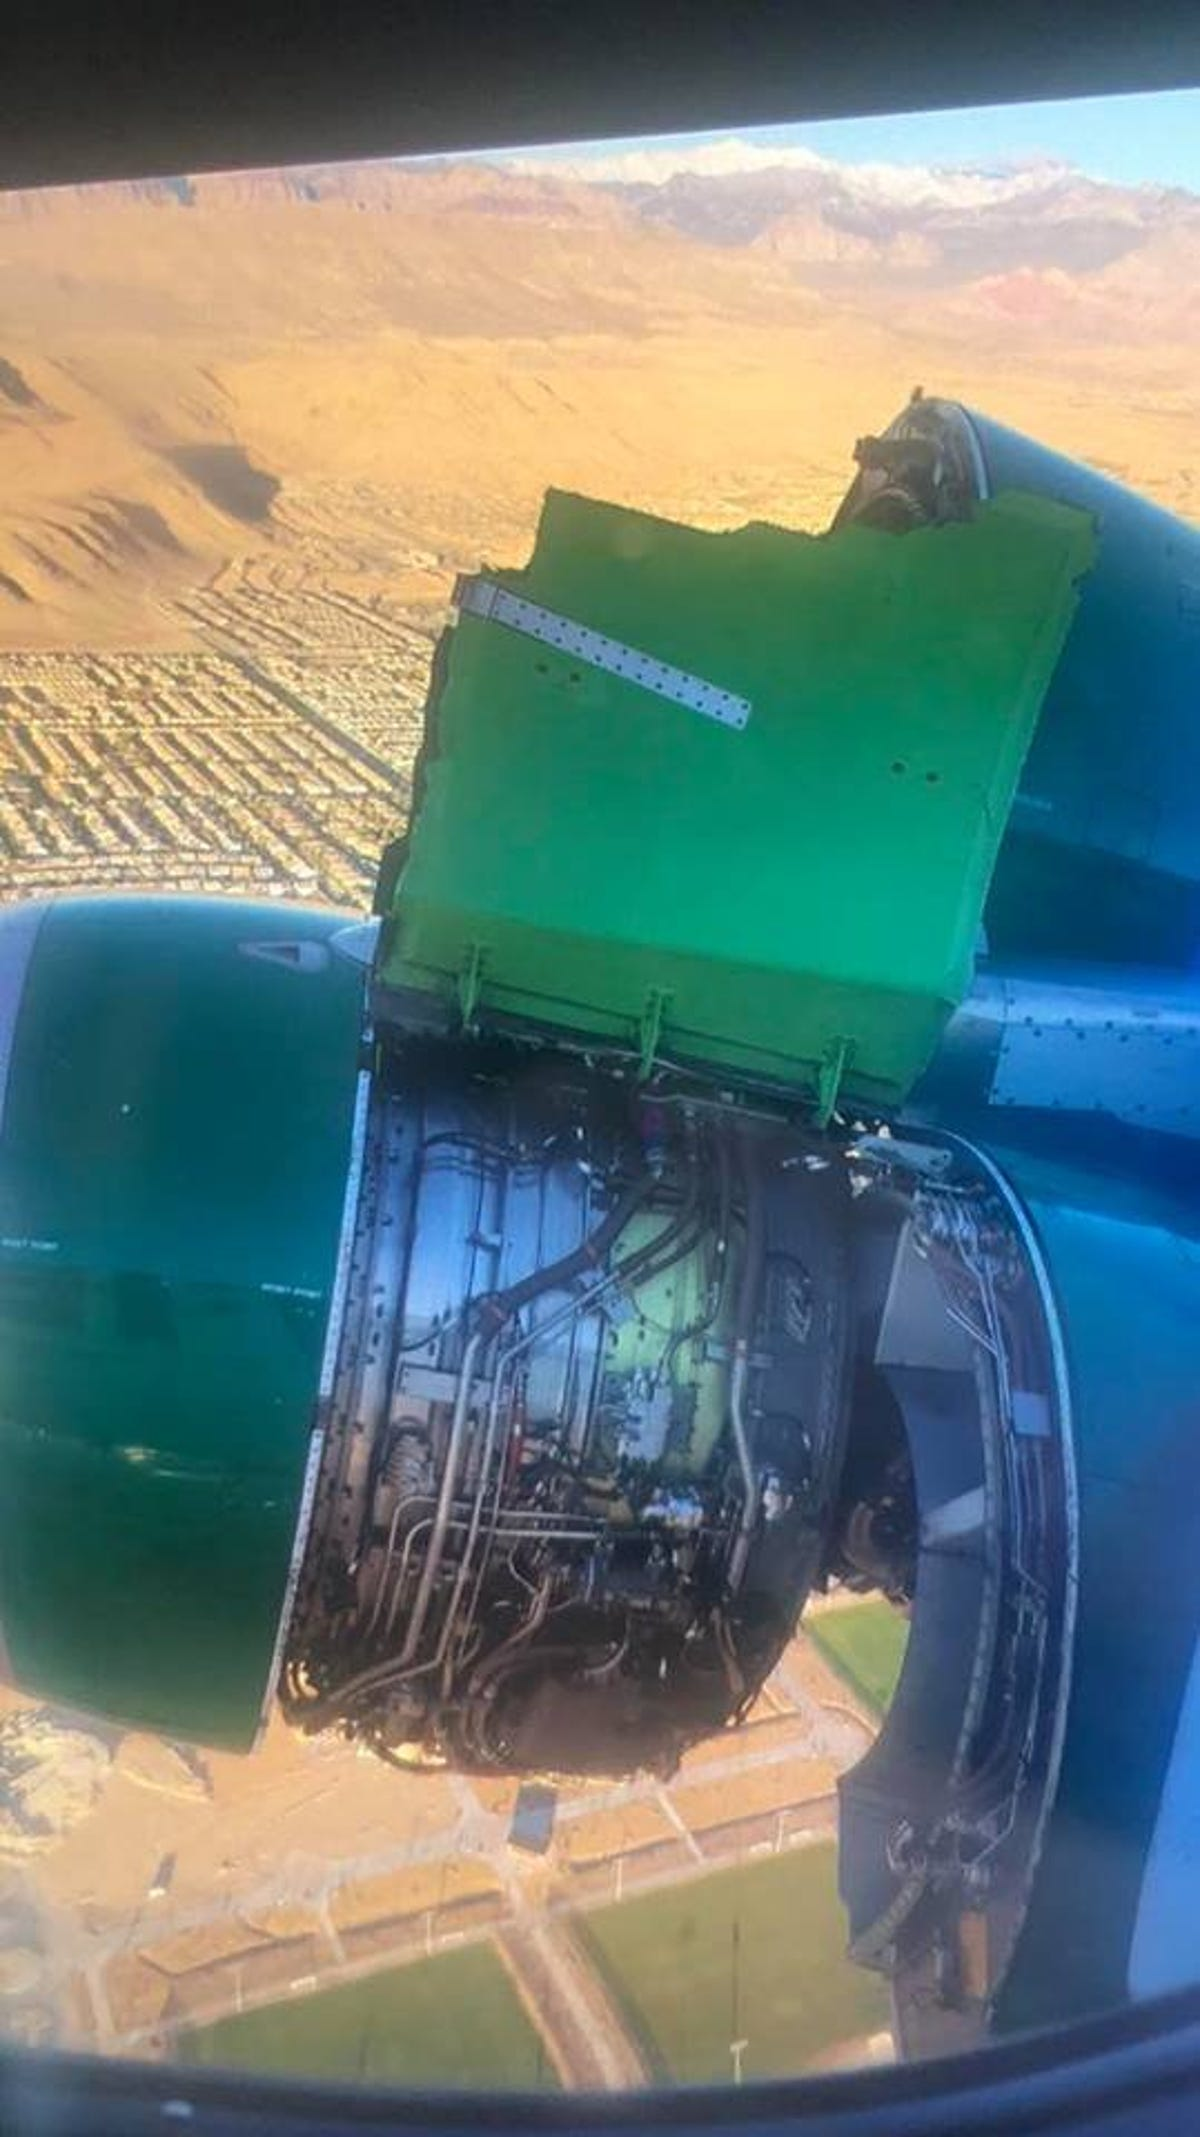 Engine cover comes off during Frontier flight from Las Vegas